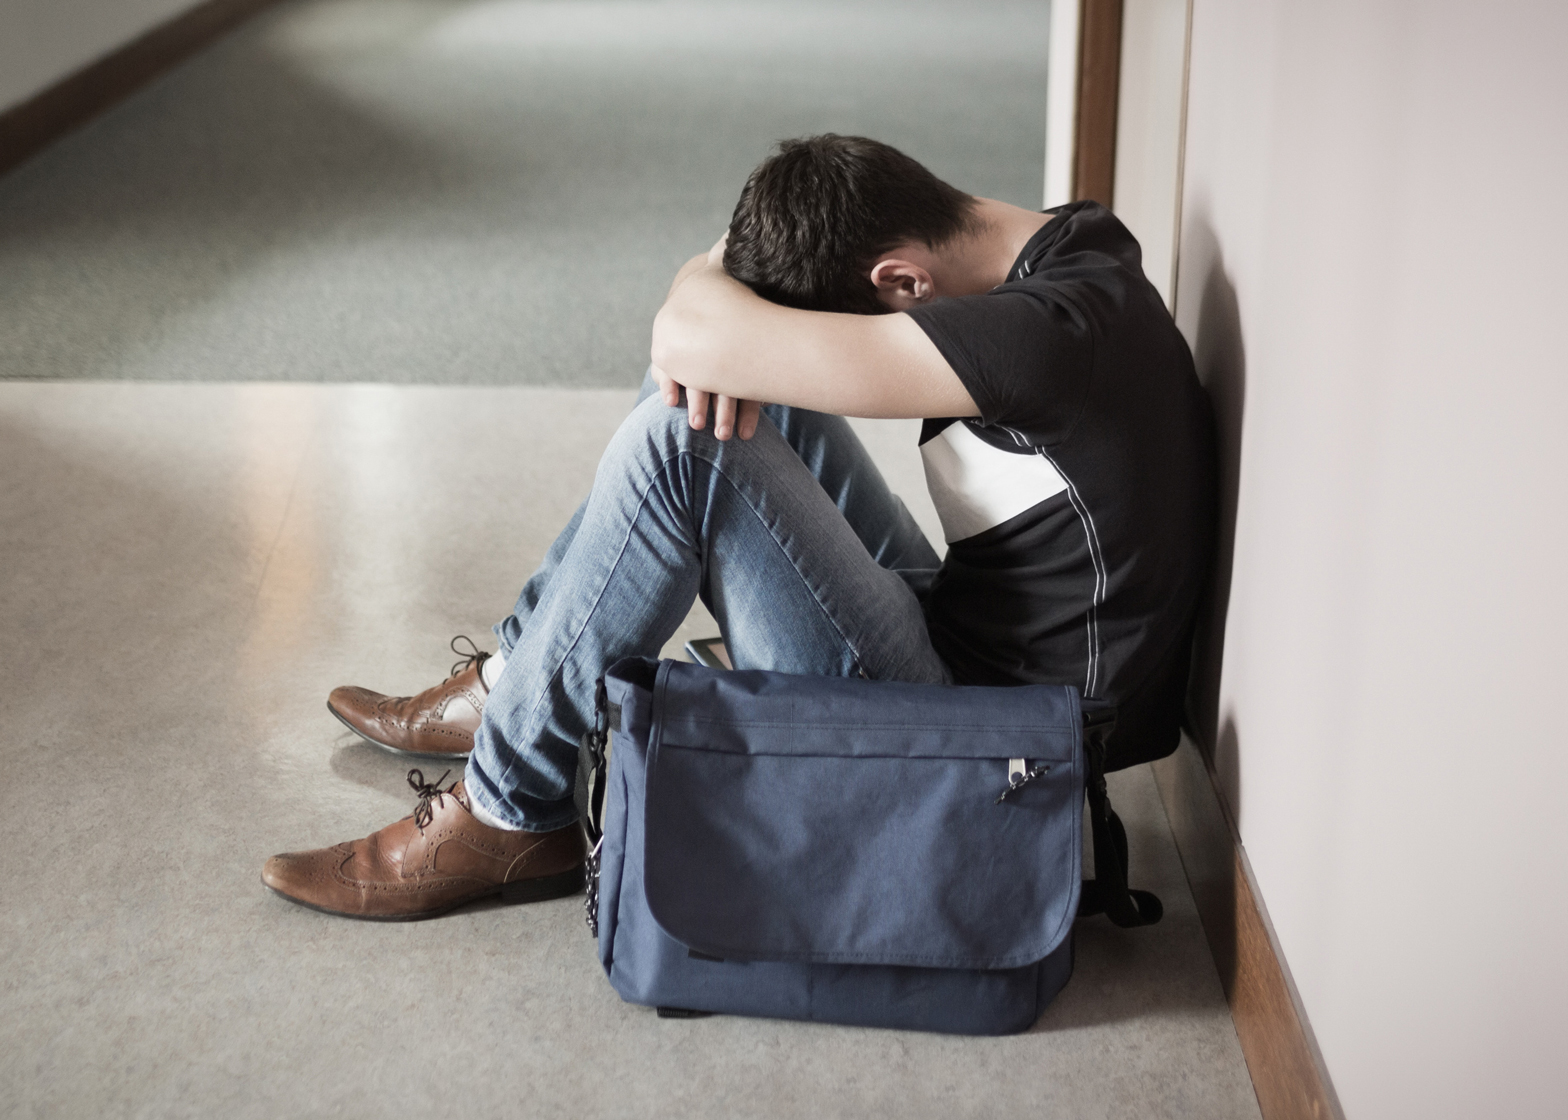 Quarter of UK architecture students report mental health issues